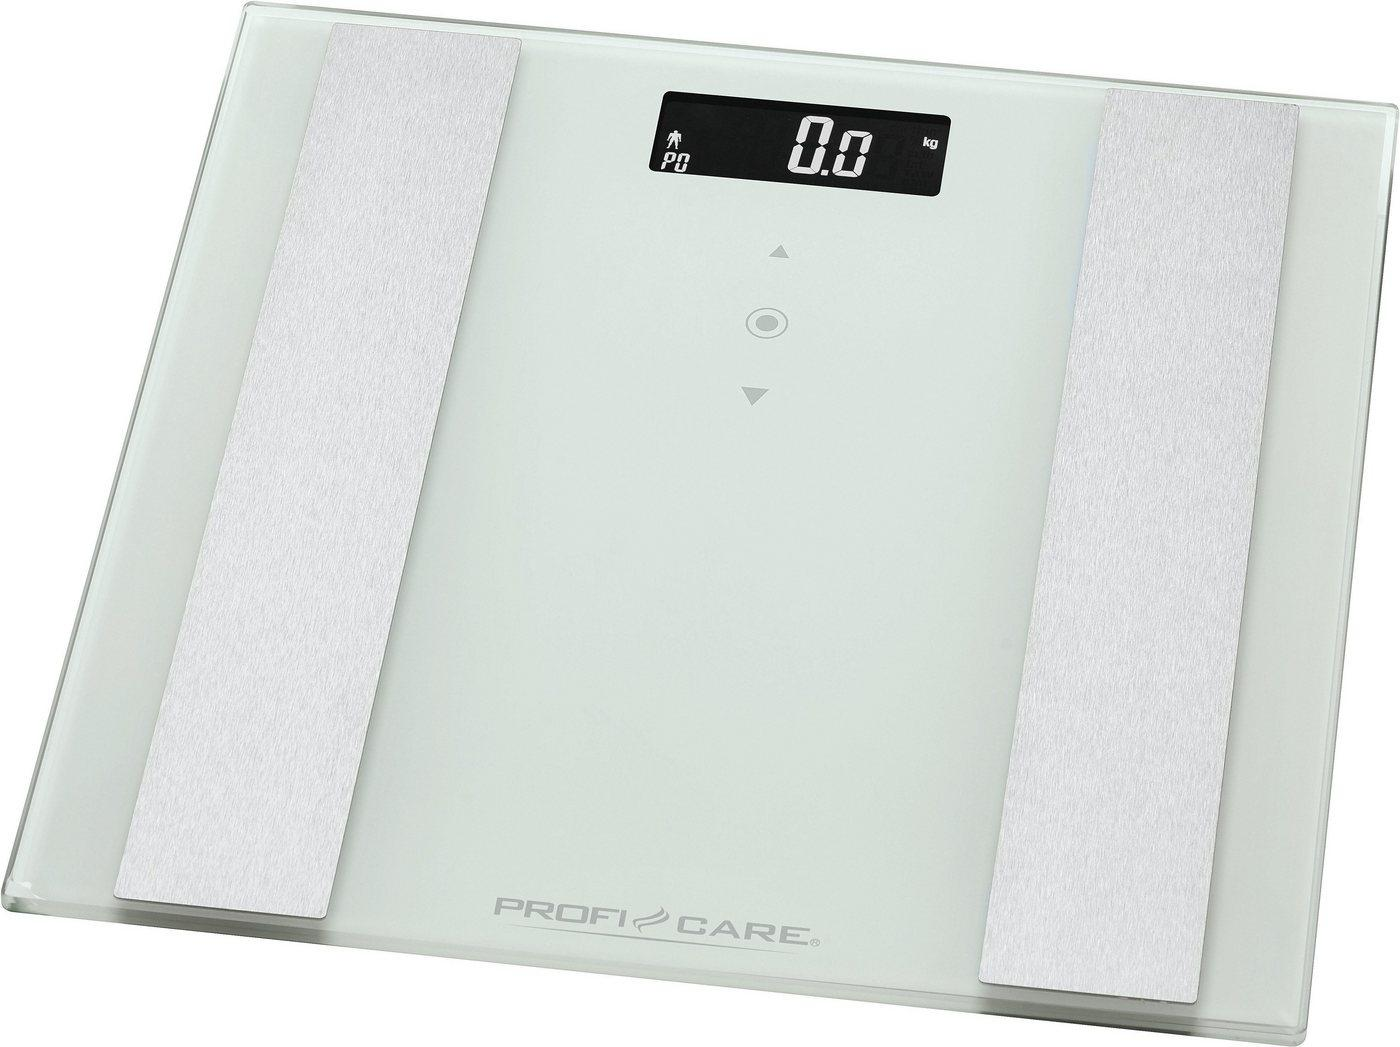 ProfiCare Körper-Analyse-Waage »PC-PW 3007 FA«, 8 in 1 Glas-Analyse-Waage in 2 Farben, weiß